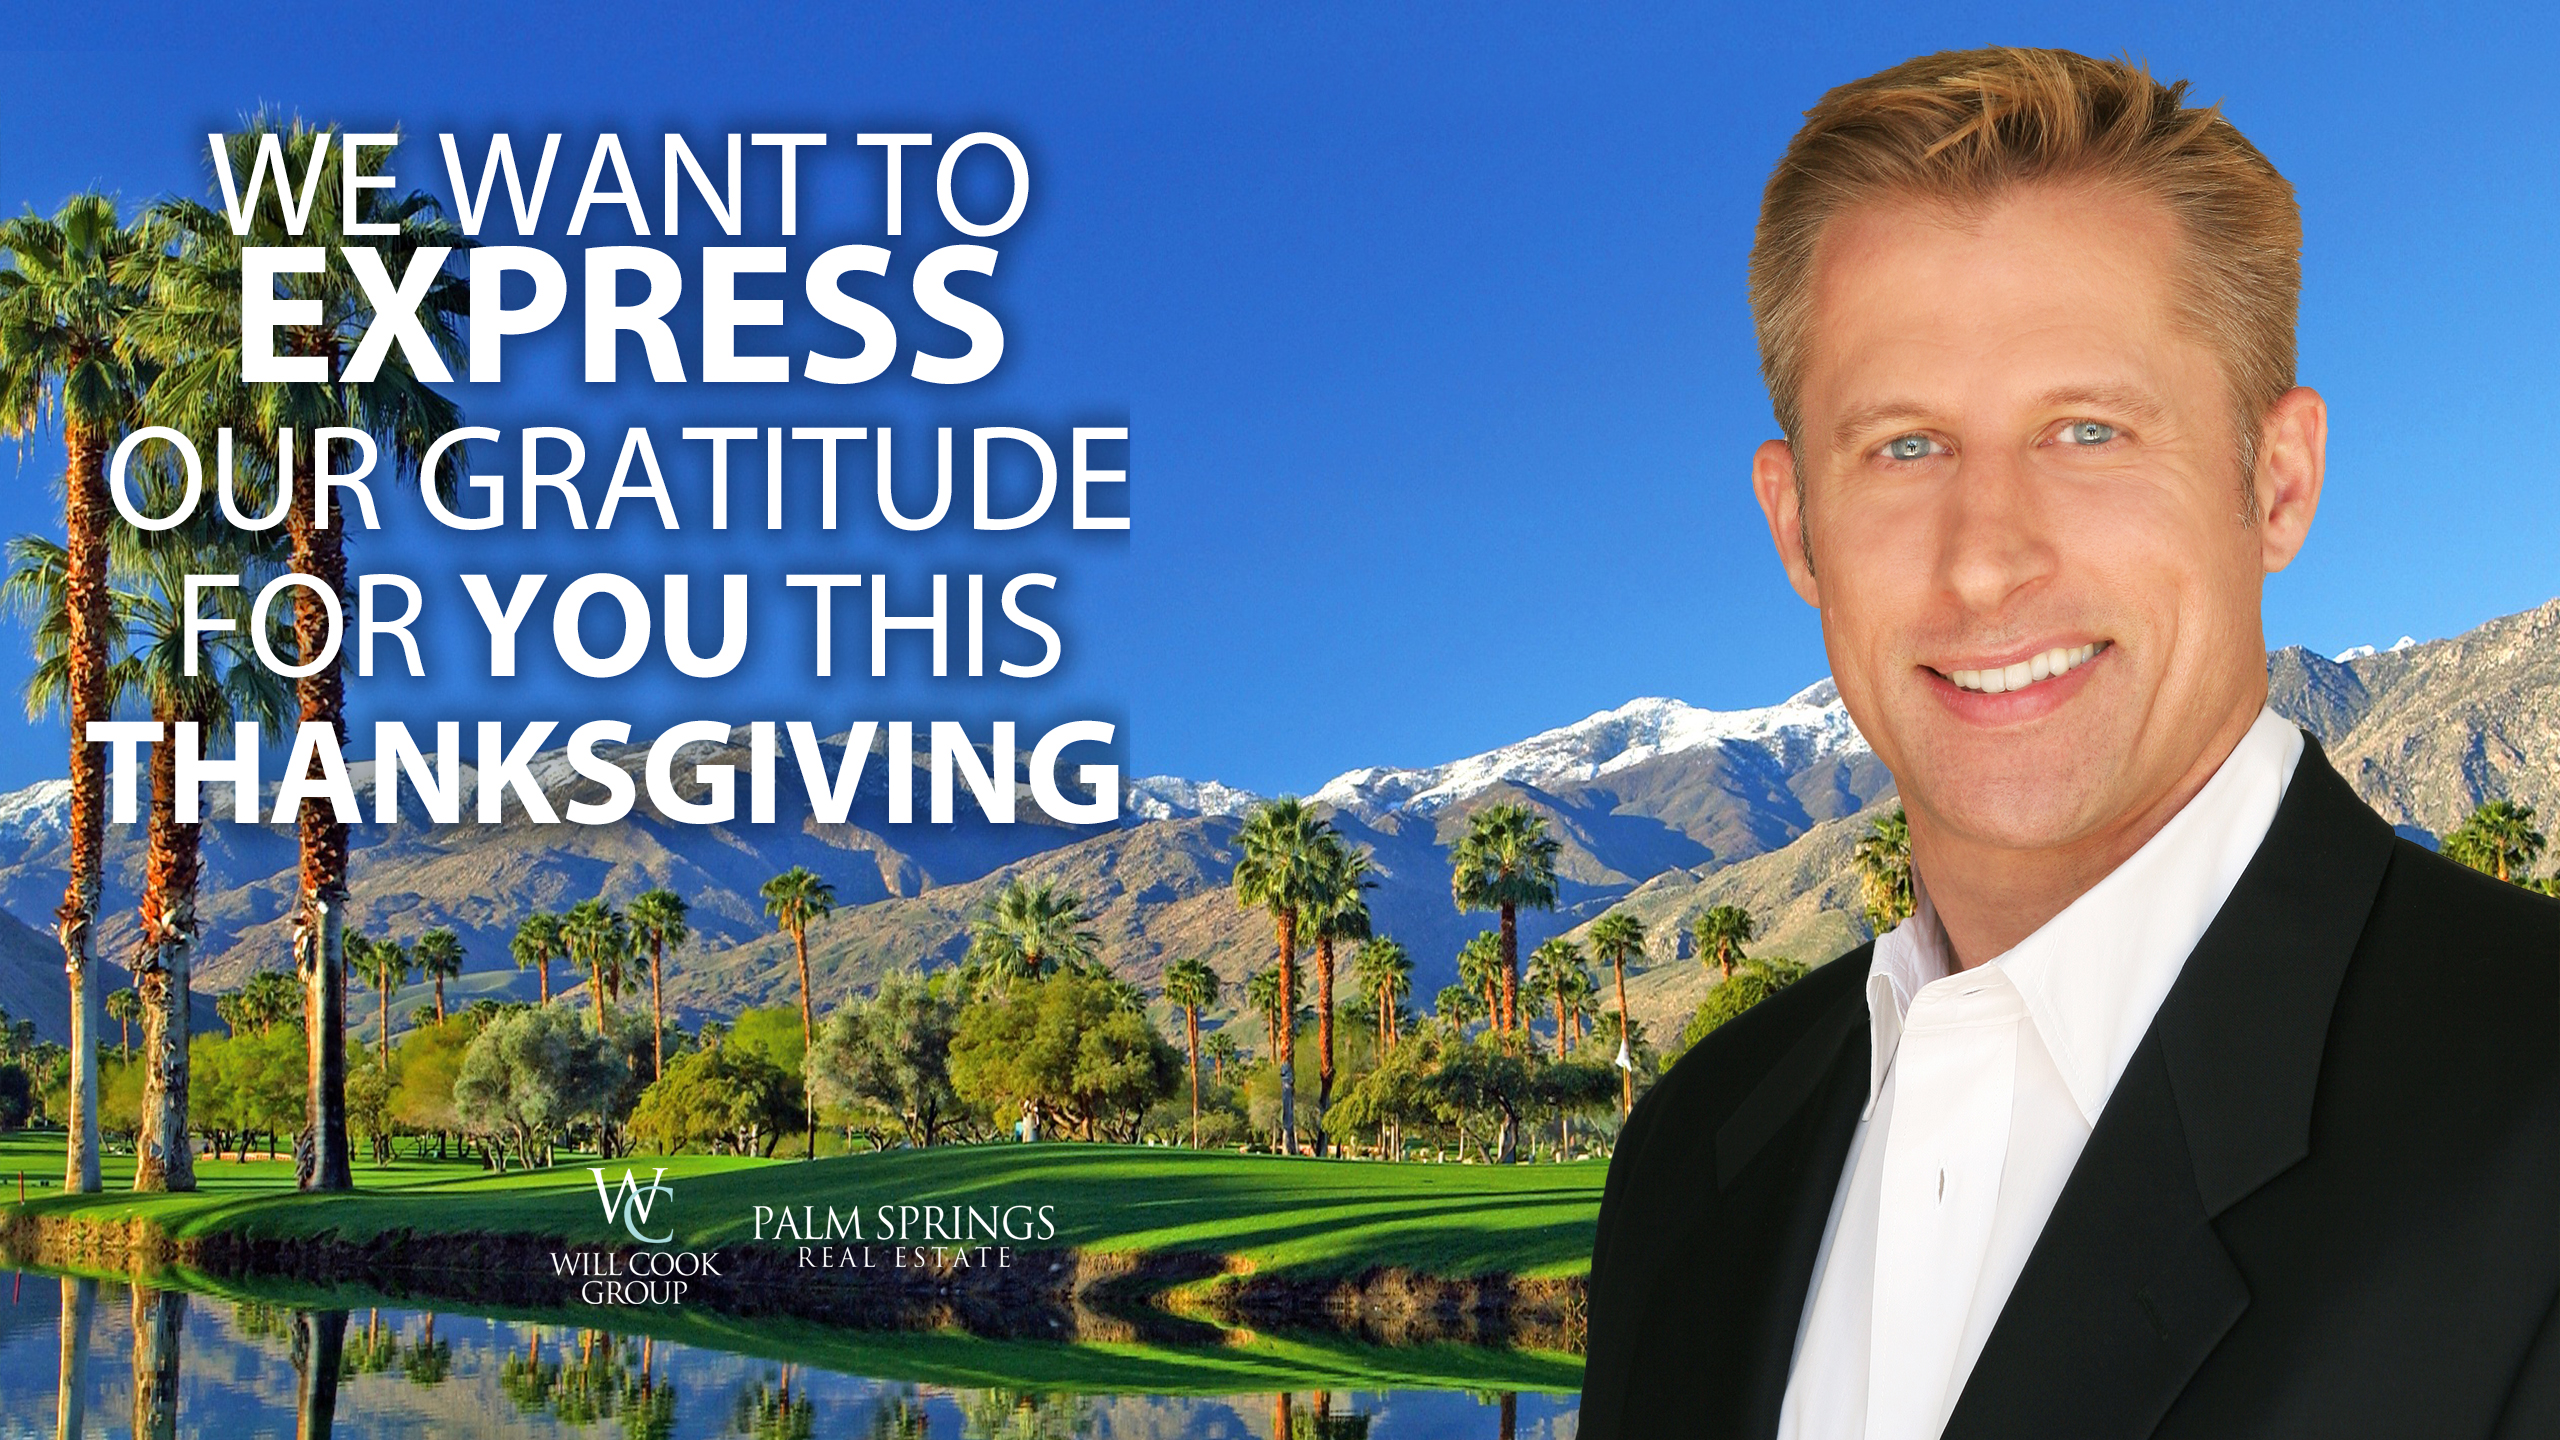 We Want to Express Our Gratitude for You This Thanksgiving